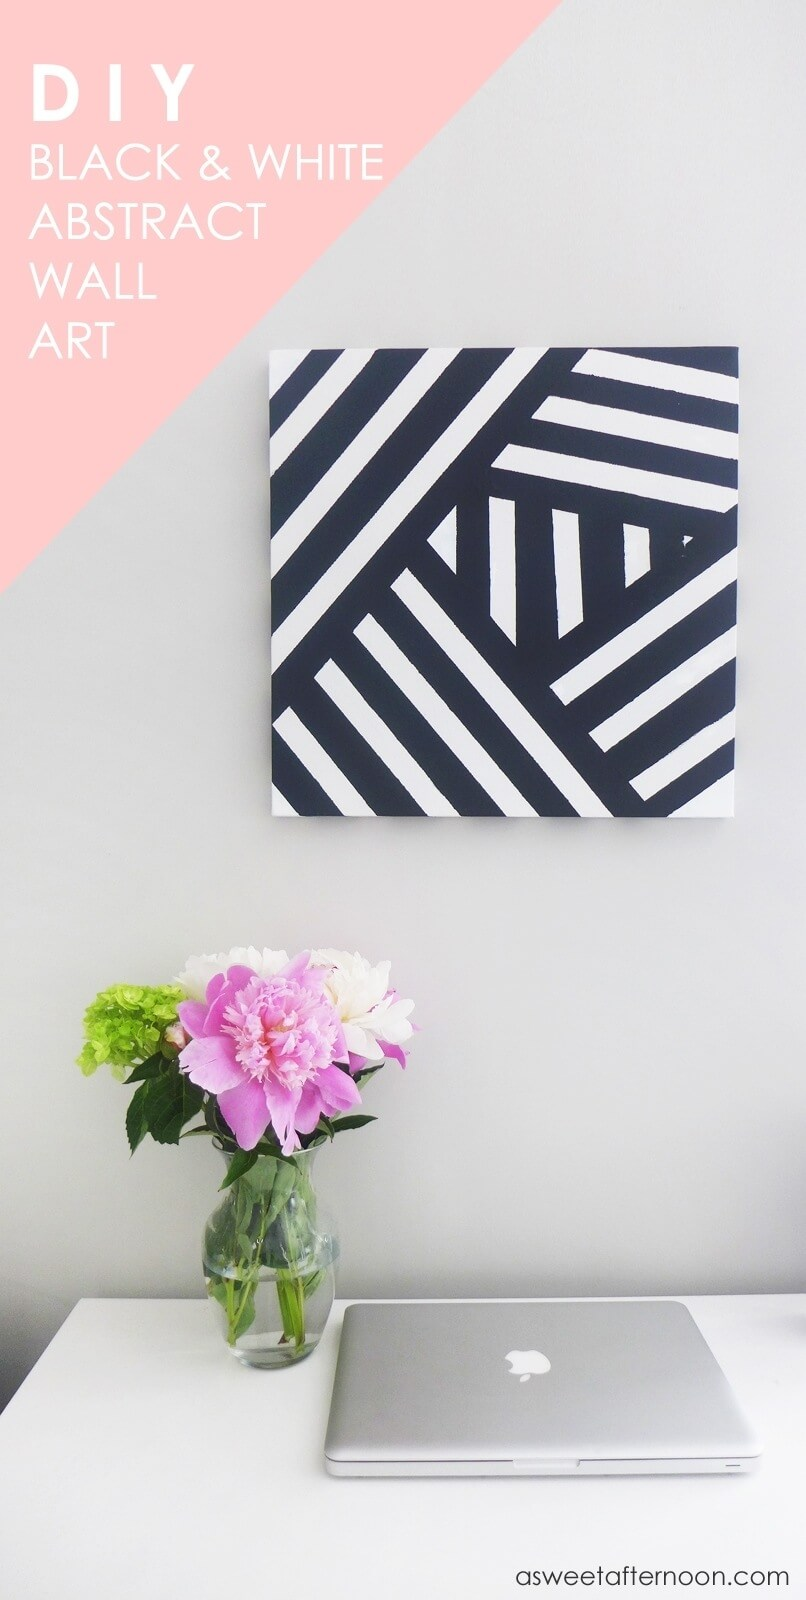 Best 36 Best Diy Wall Art Ideas Designs And Decorations For 2019 This Month